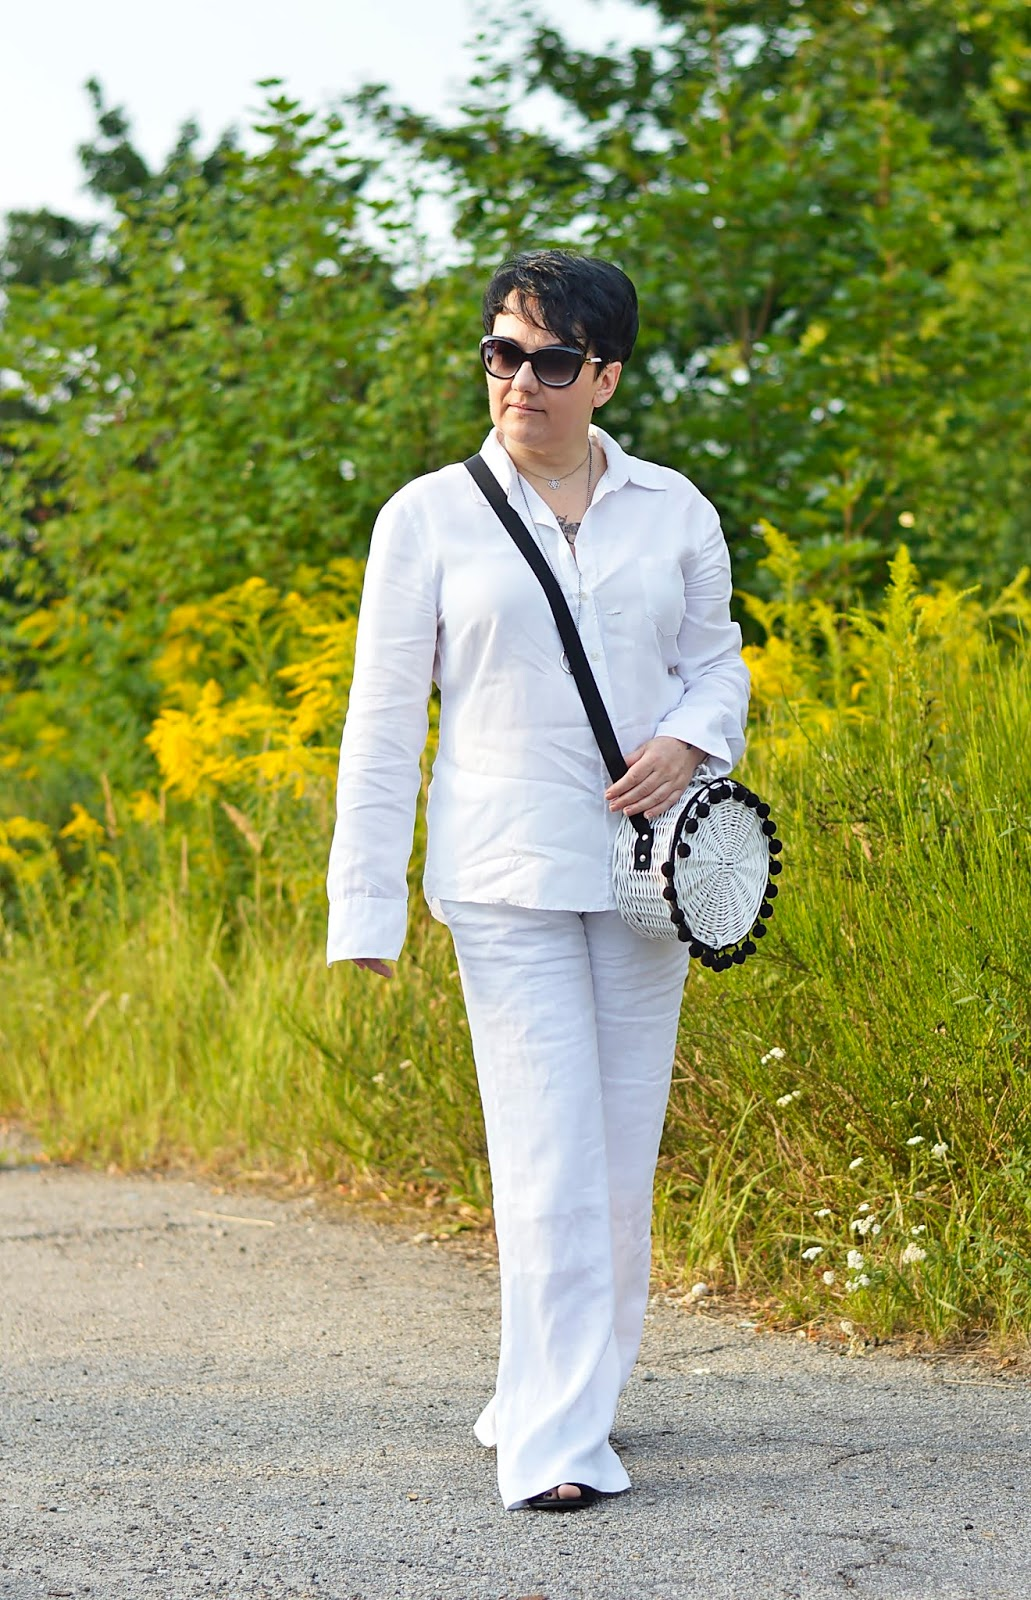 Black and white fashion, white total look